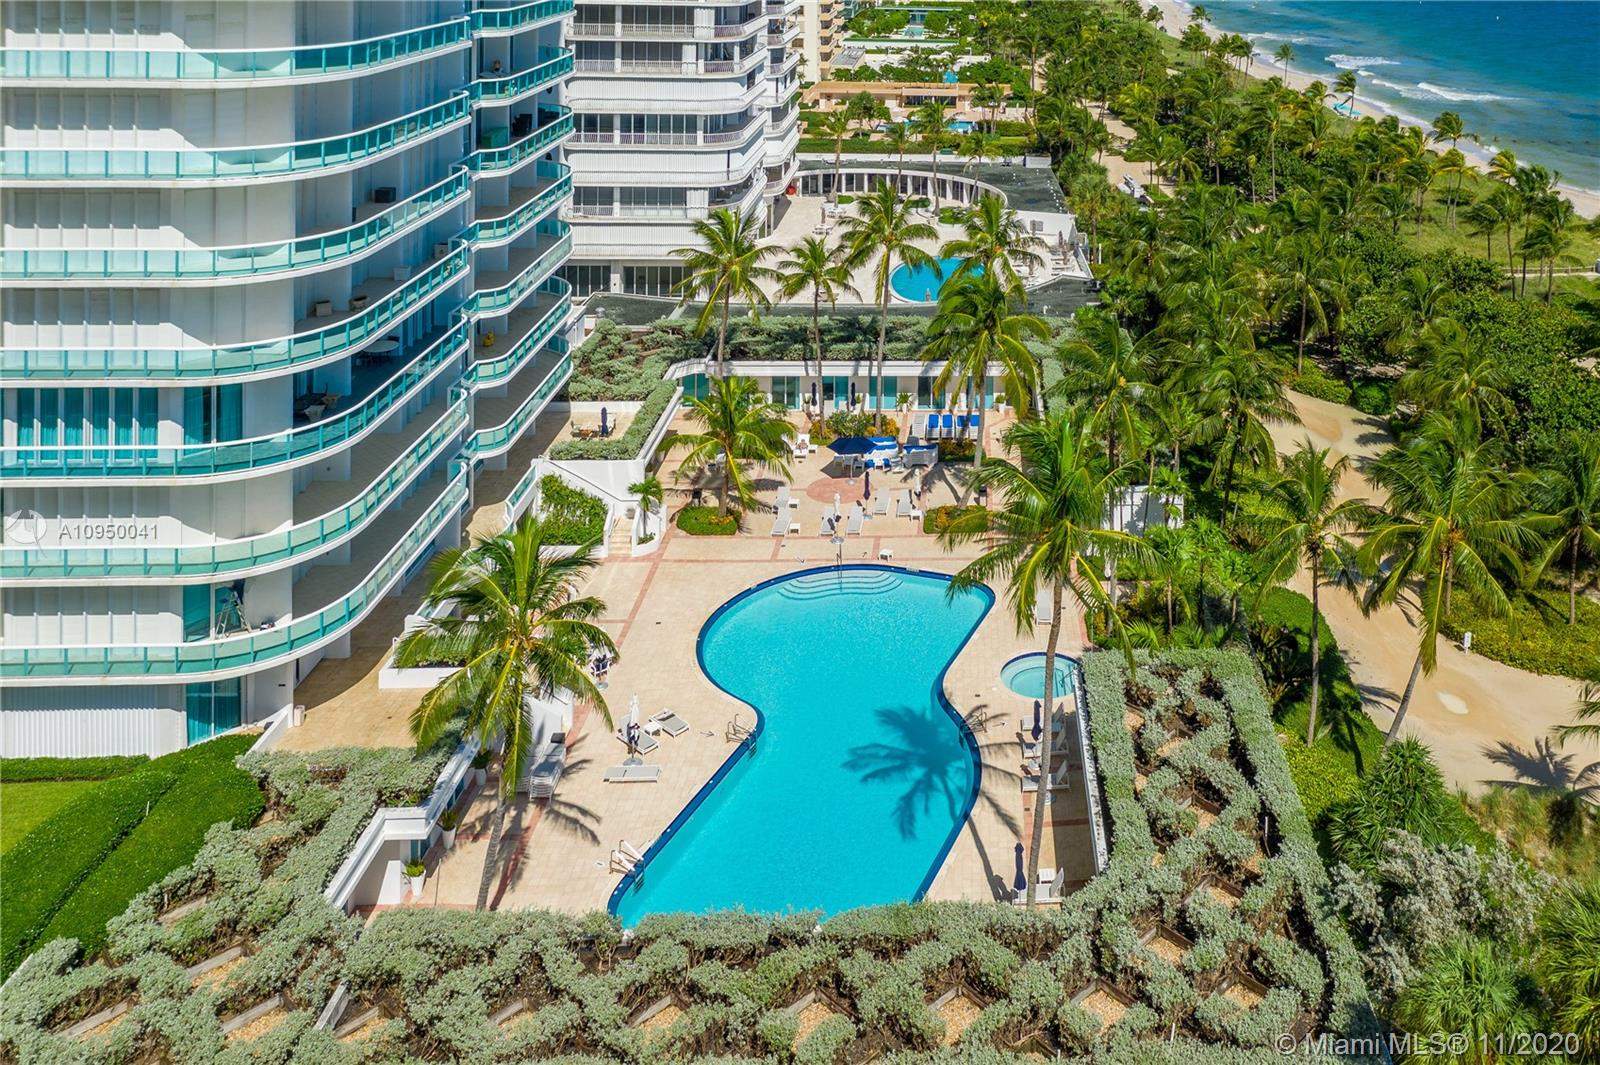 Palace at Bal Harbour image #39